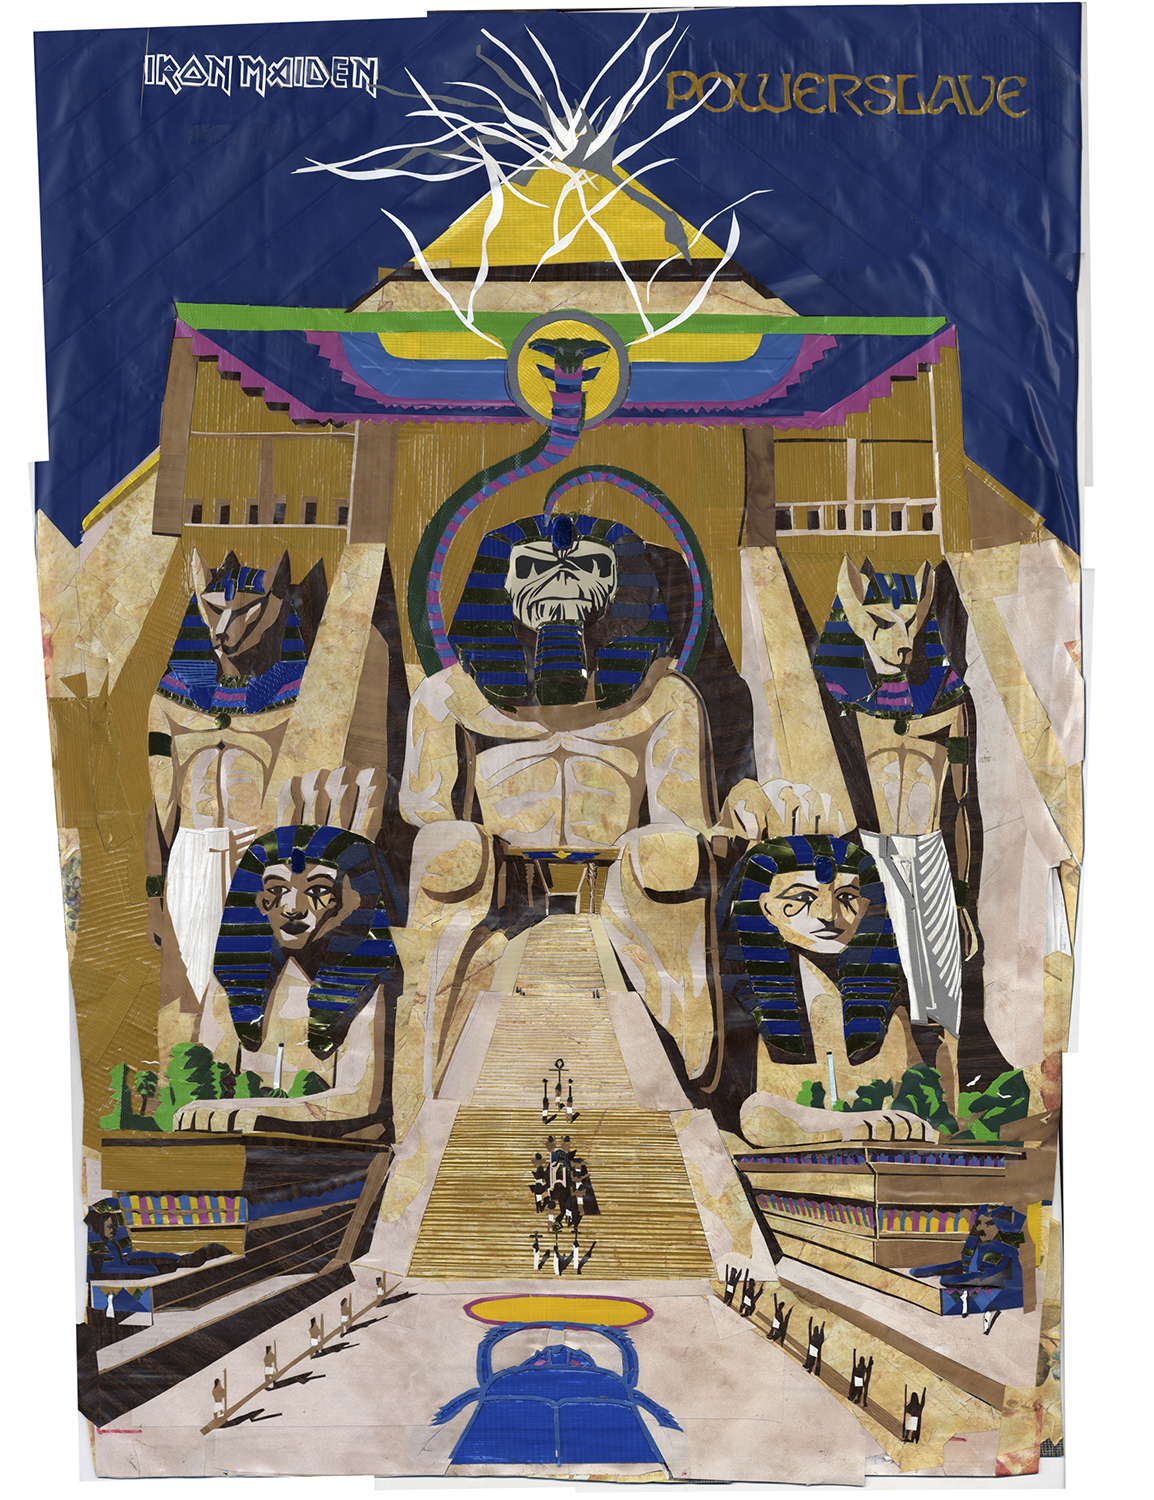 Powerslave: For Anton Maiden, R.I.P.